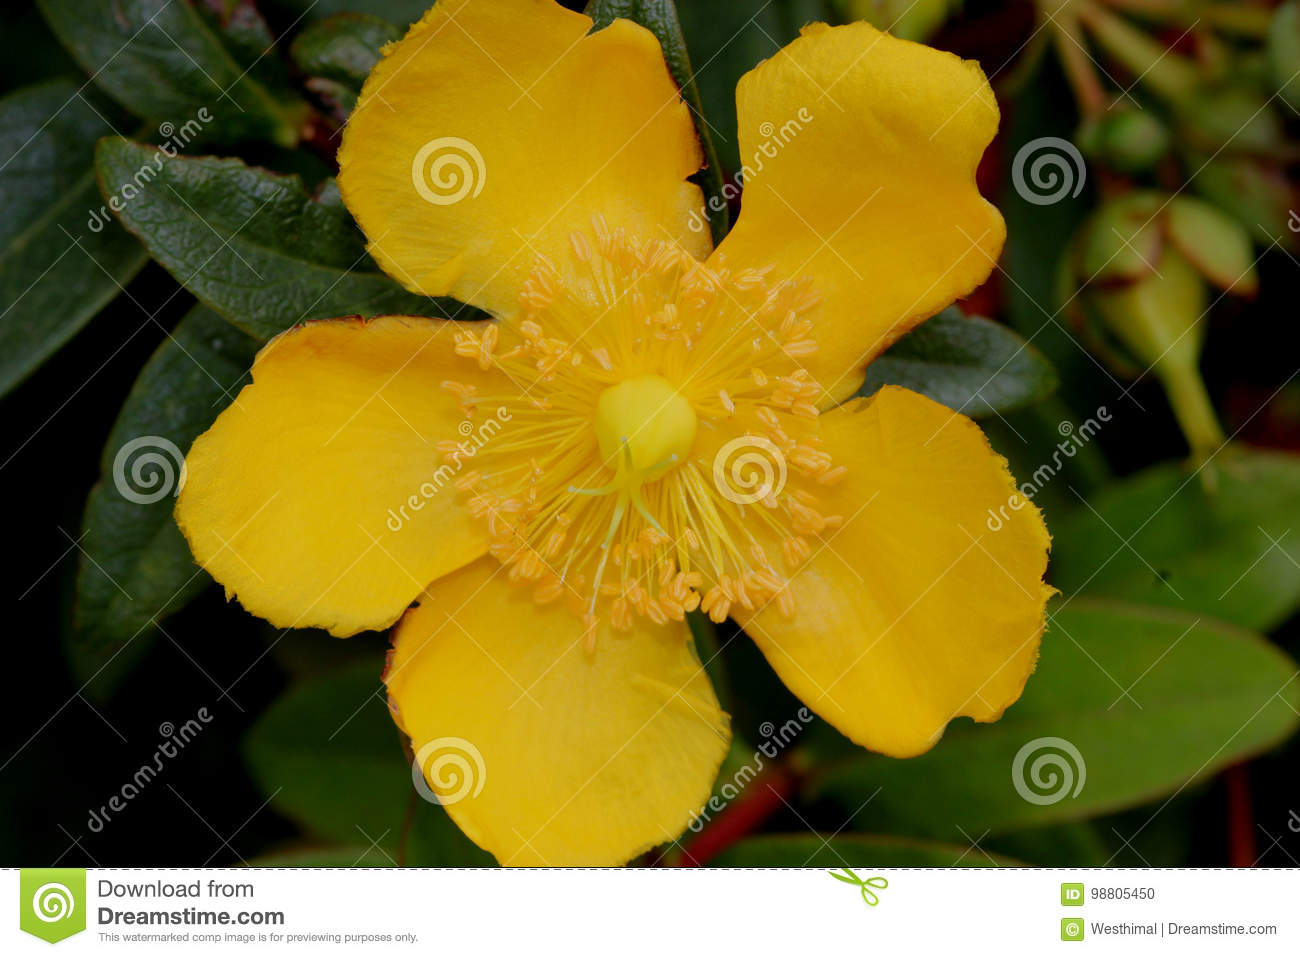 Hypericum calycinum st johns wort rose of sharon stock photo hypericum calycinum st johns wort rose of sharon small shrub with oval to oblong green leaves and 5 7 cm across yellow 5 petalled rose like flowers mightylinksfo